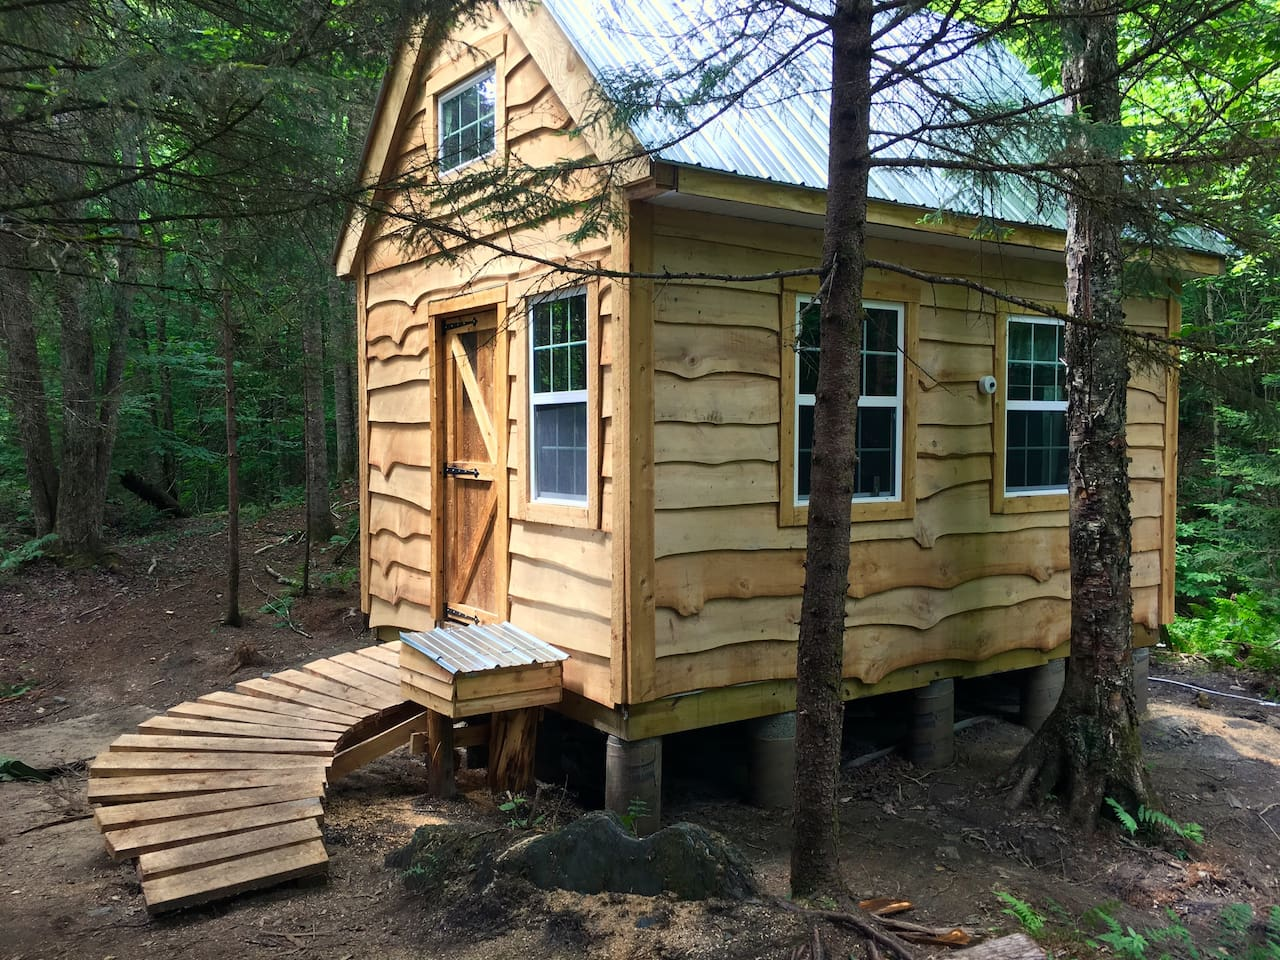 Complete with an ewok bridge, this cabin was built to fit in with the knoll-covered landscape around it.